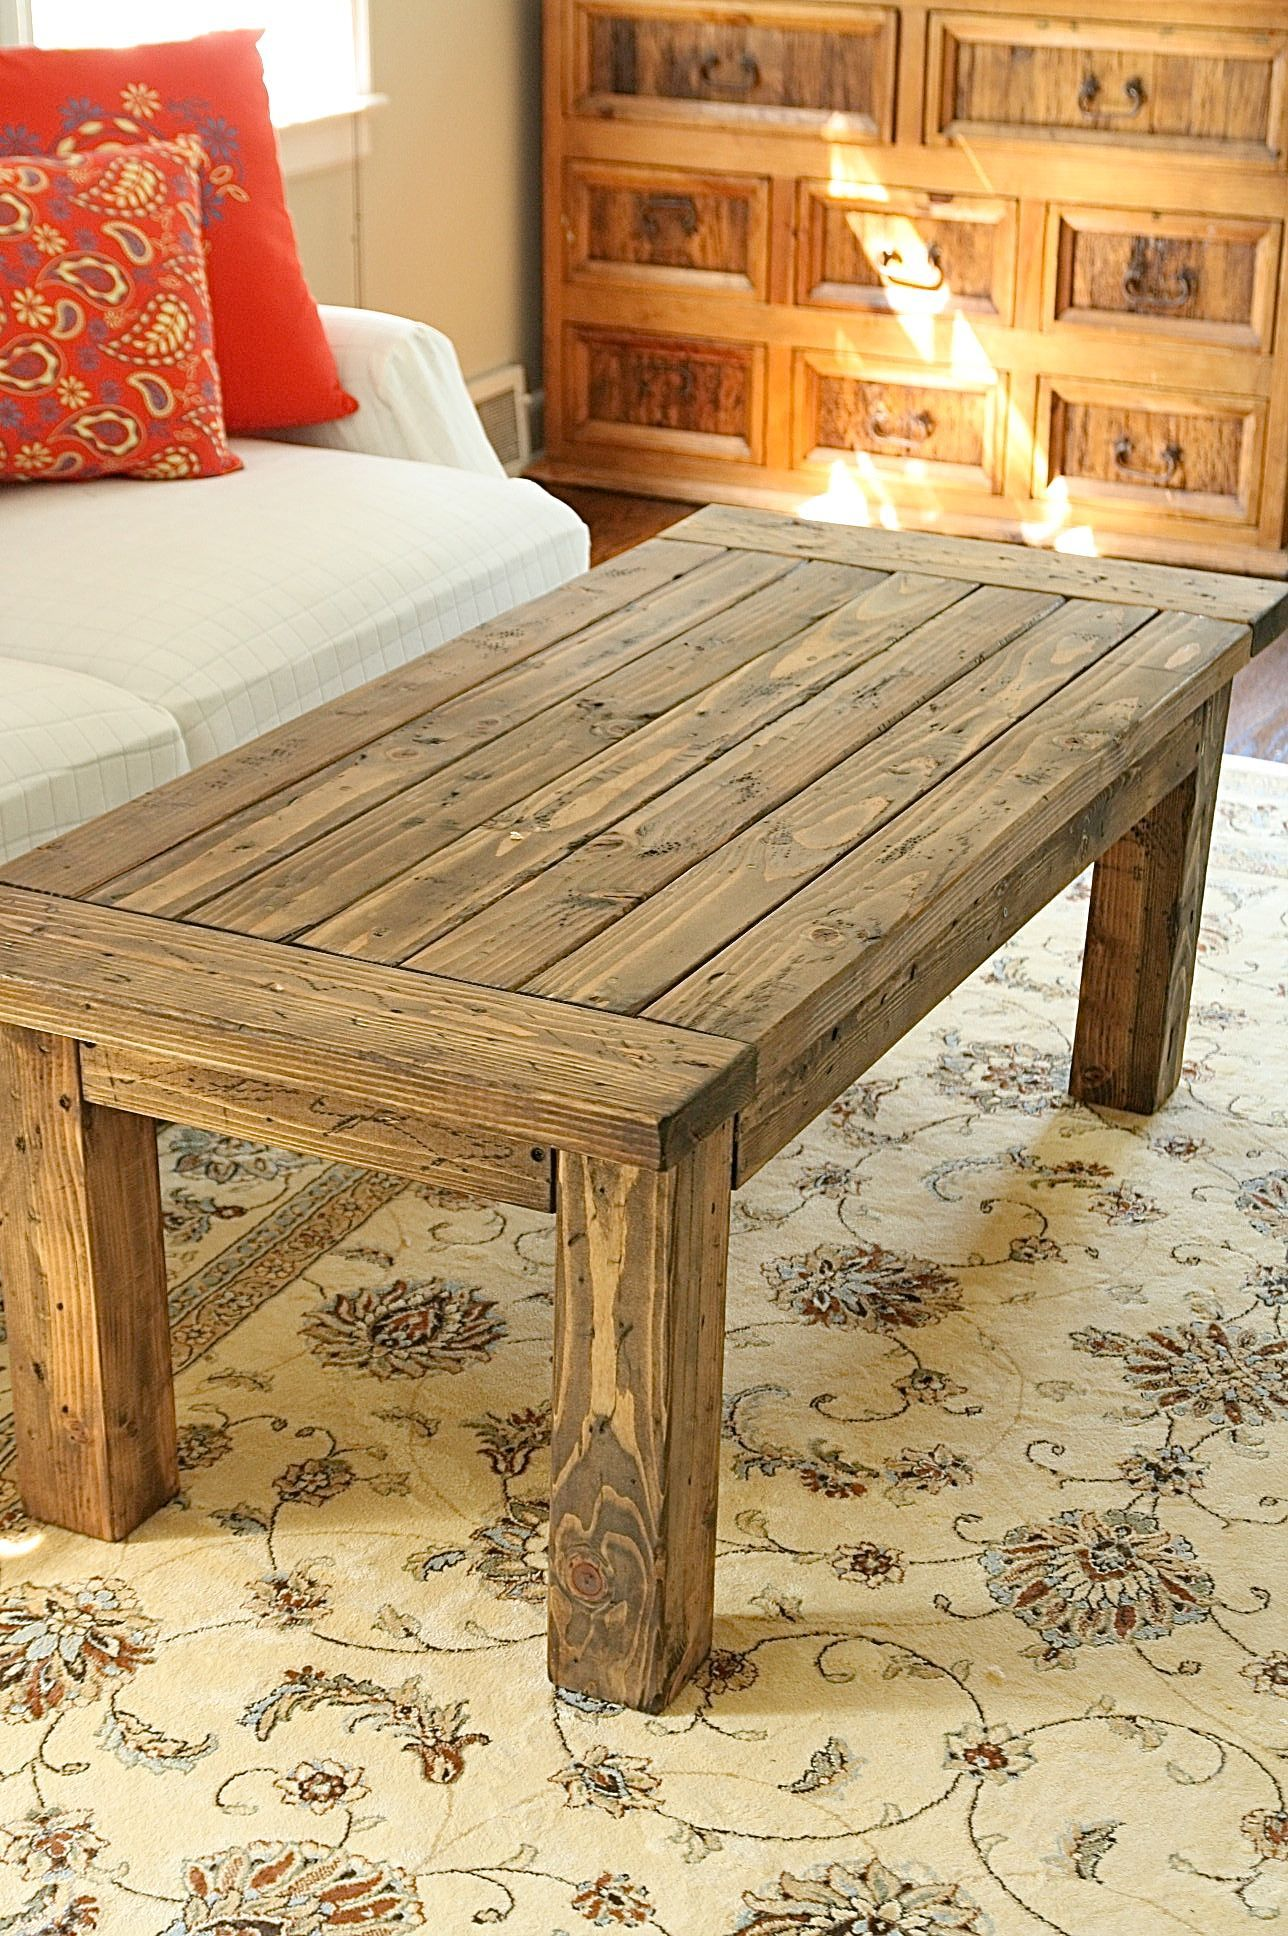 Coffee table do it yourself home projects from ana white diy pinterest do it yourself Do it yourself coffee table